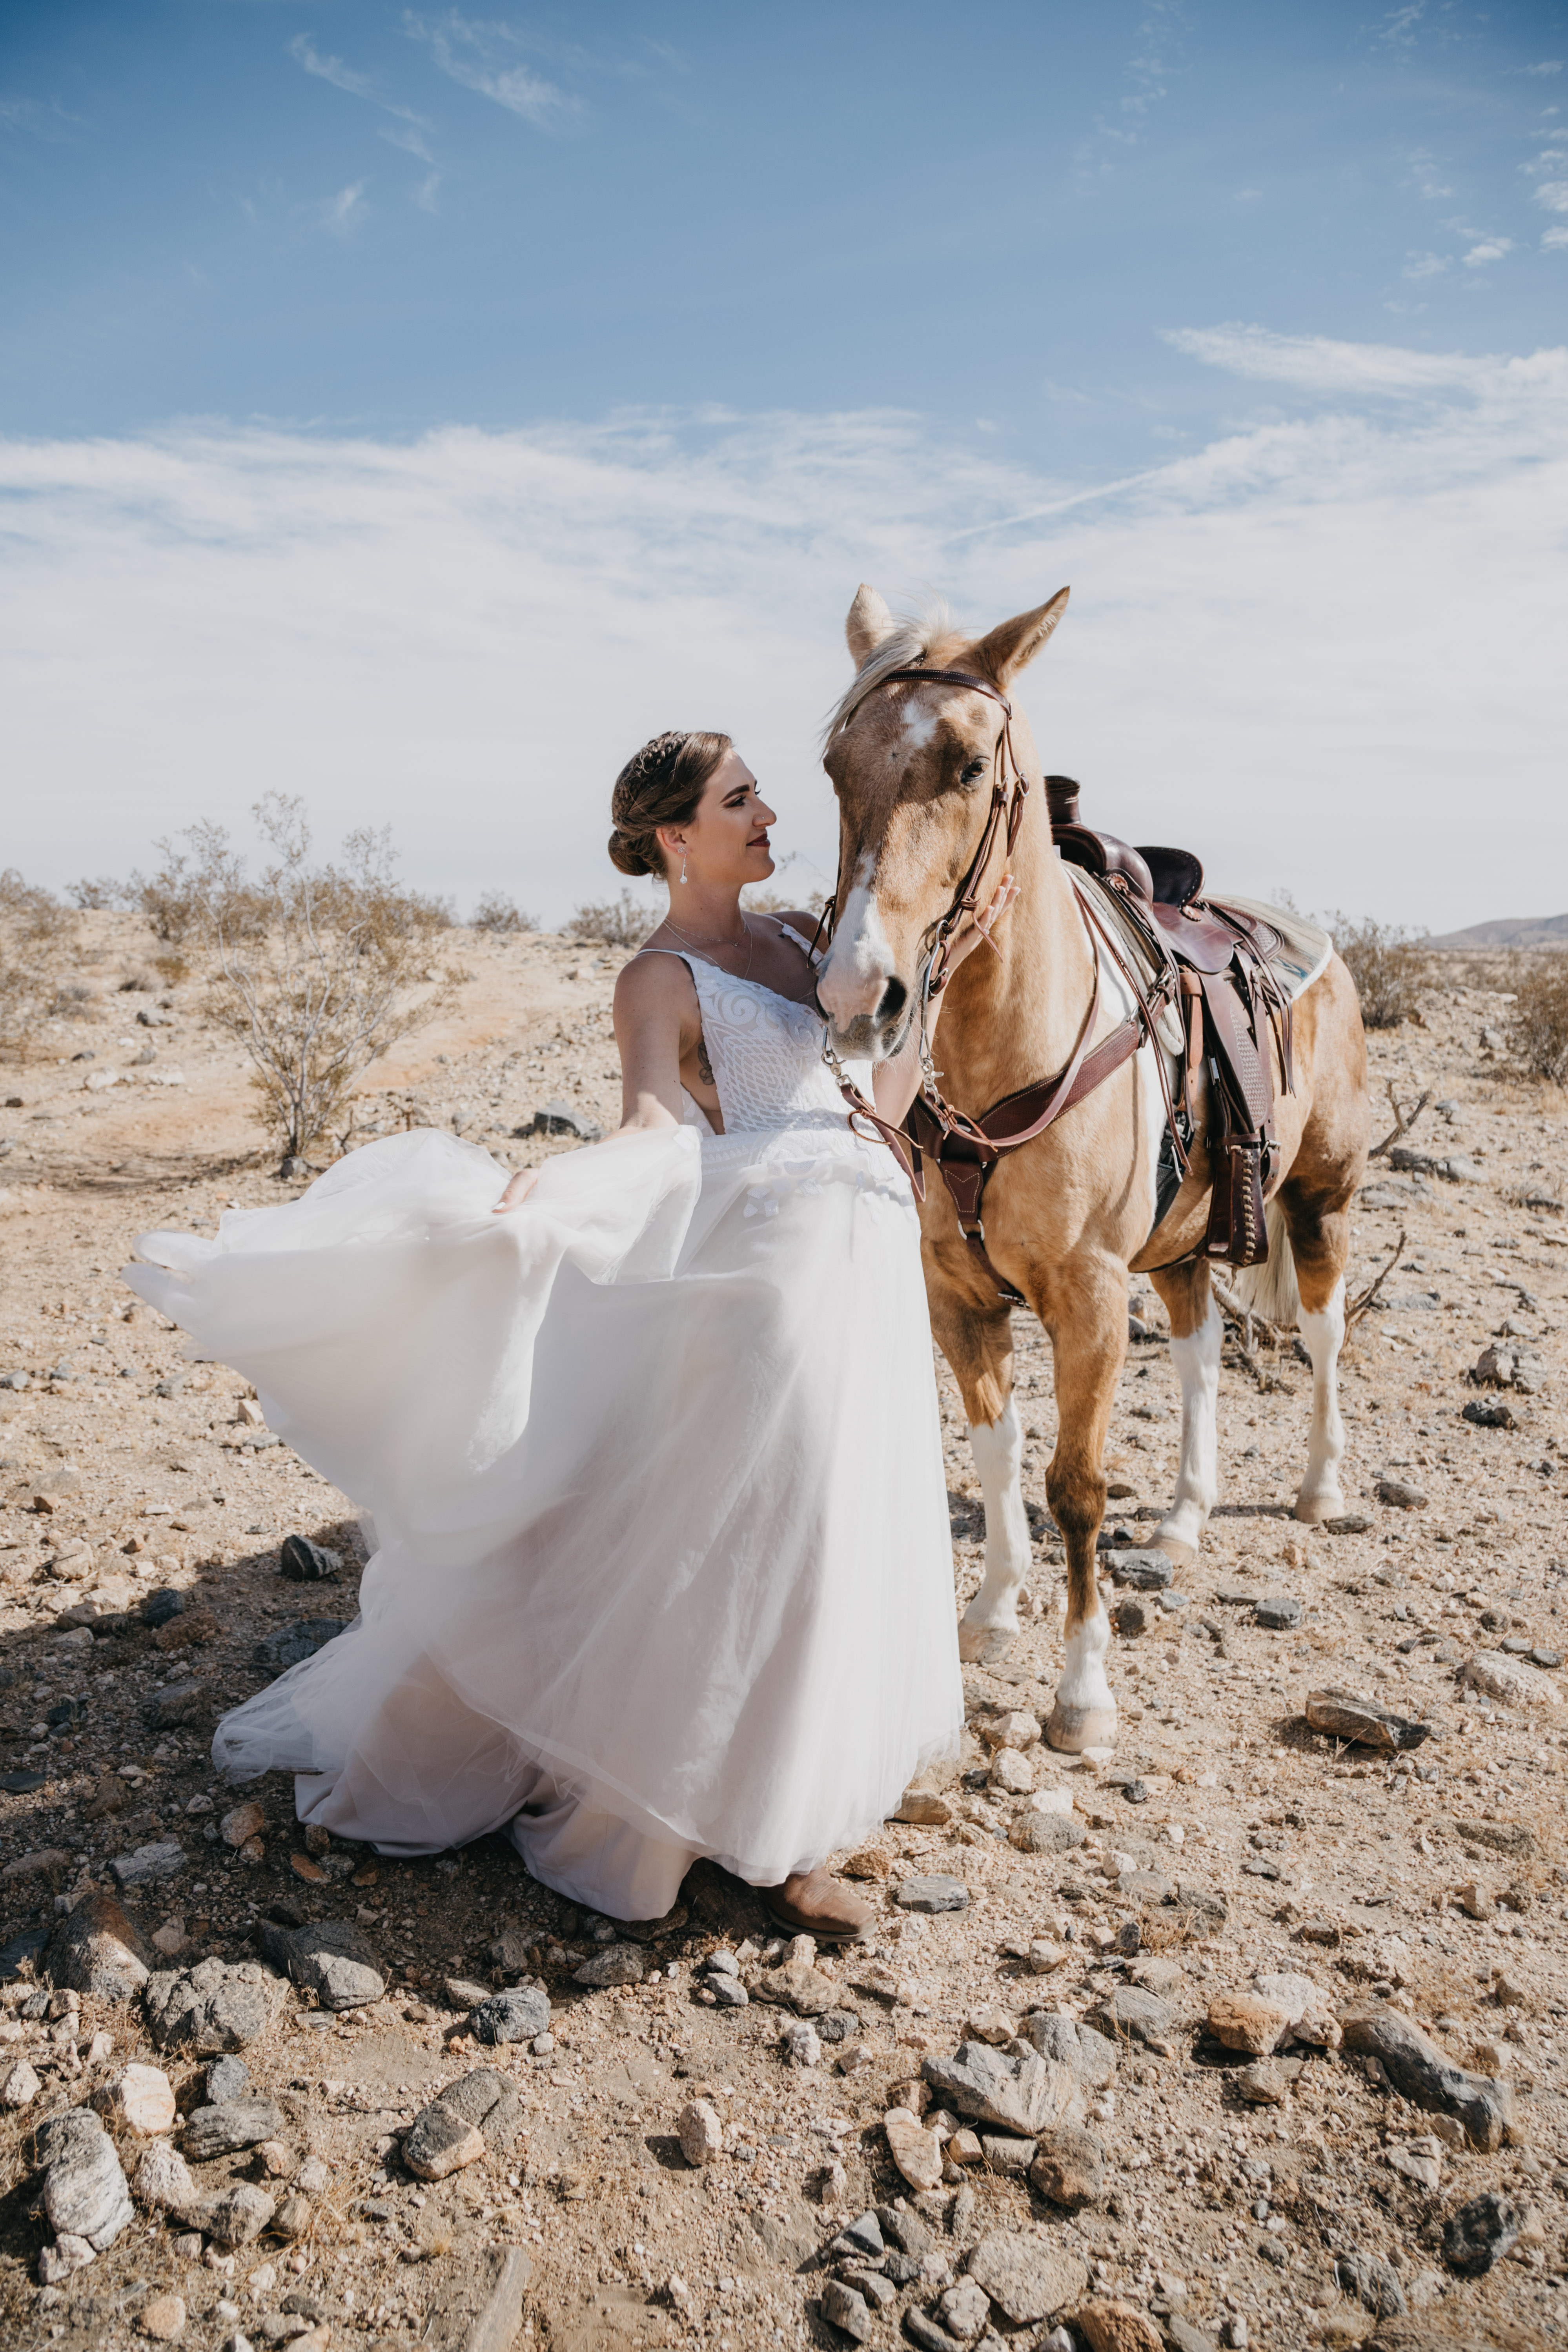 Bride portraits with horses, image by Fatima Elreda Photo